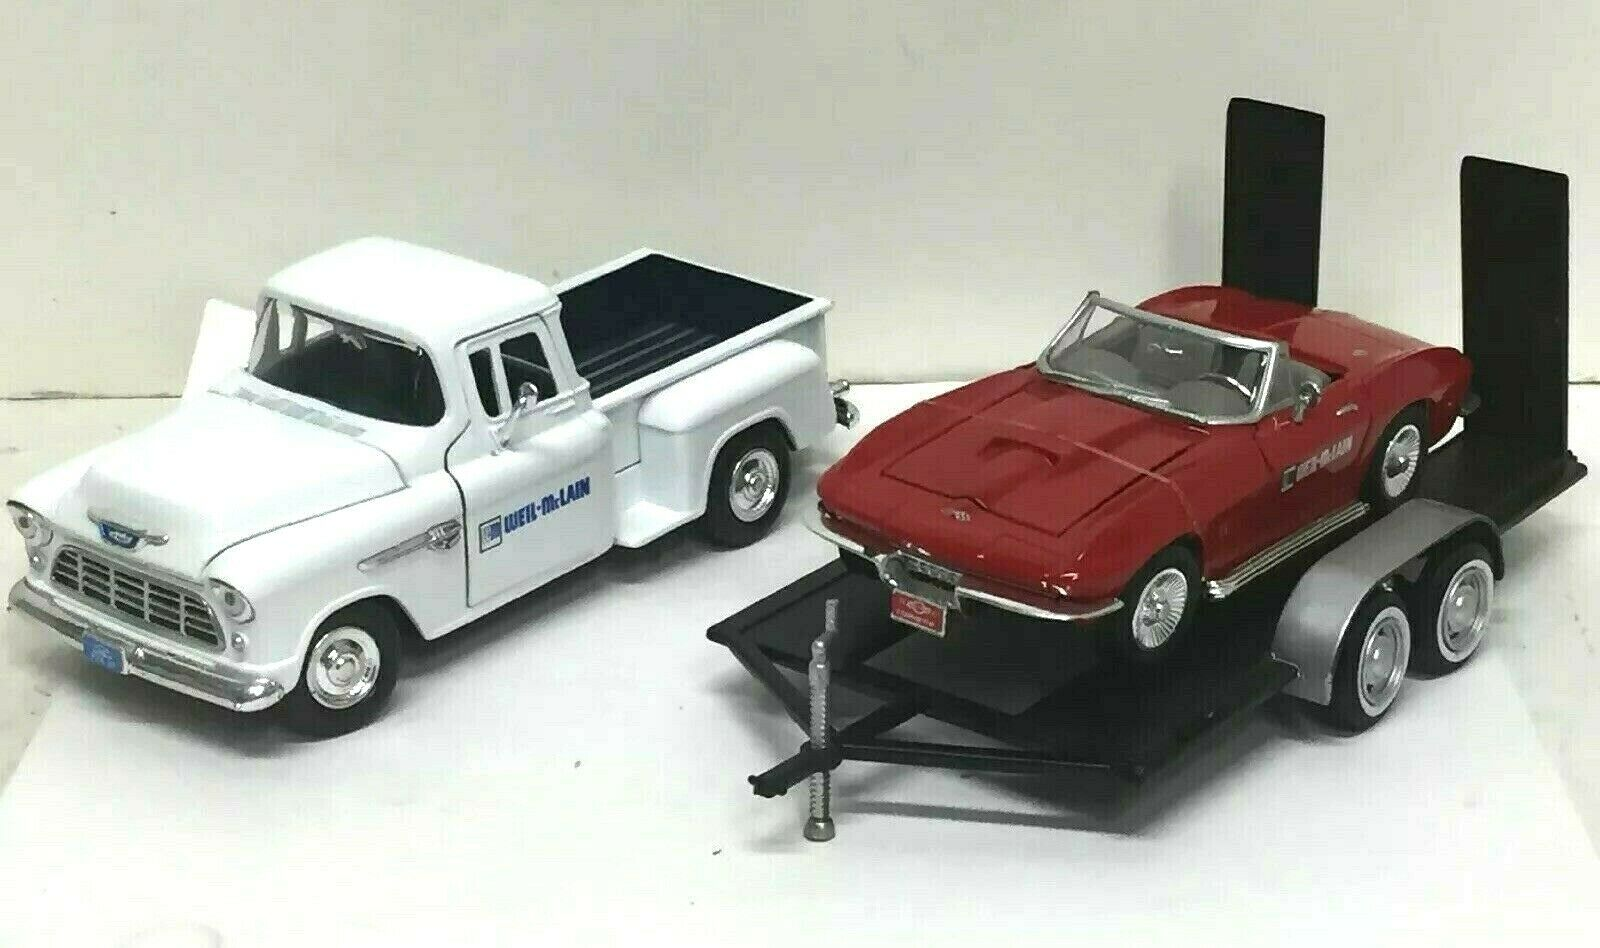 WEIL-MCLAIN 1 24 DIE CAST CHEVY 5100 STEPSIDE & 1967 CORVETTE With TRAILER